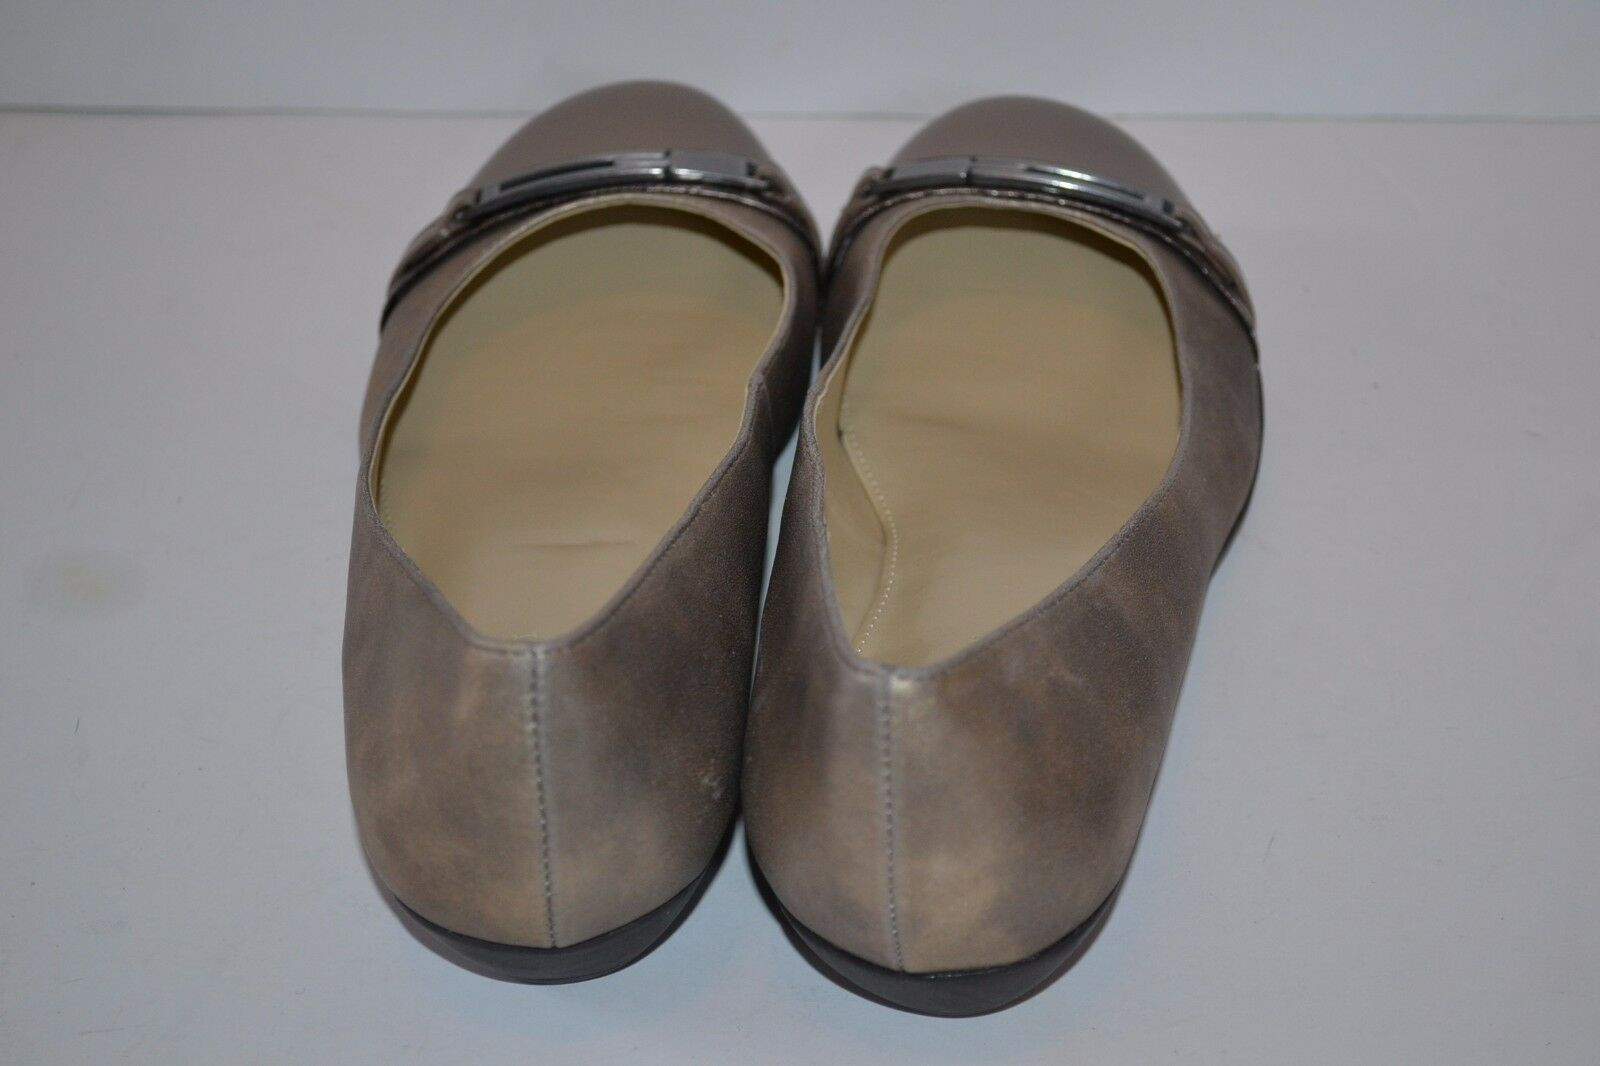 Naturalizer Helina (Women's) Size 8M BALLET FLATS FLATS FLATS SHOES PEWTER LOAFERS NEW bbeef0